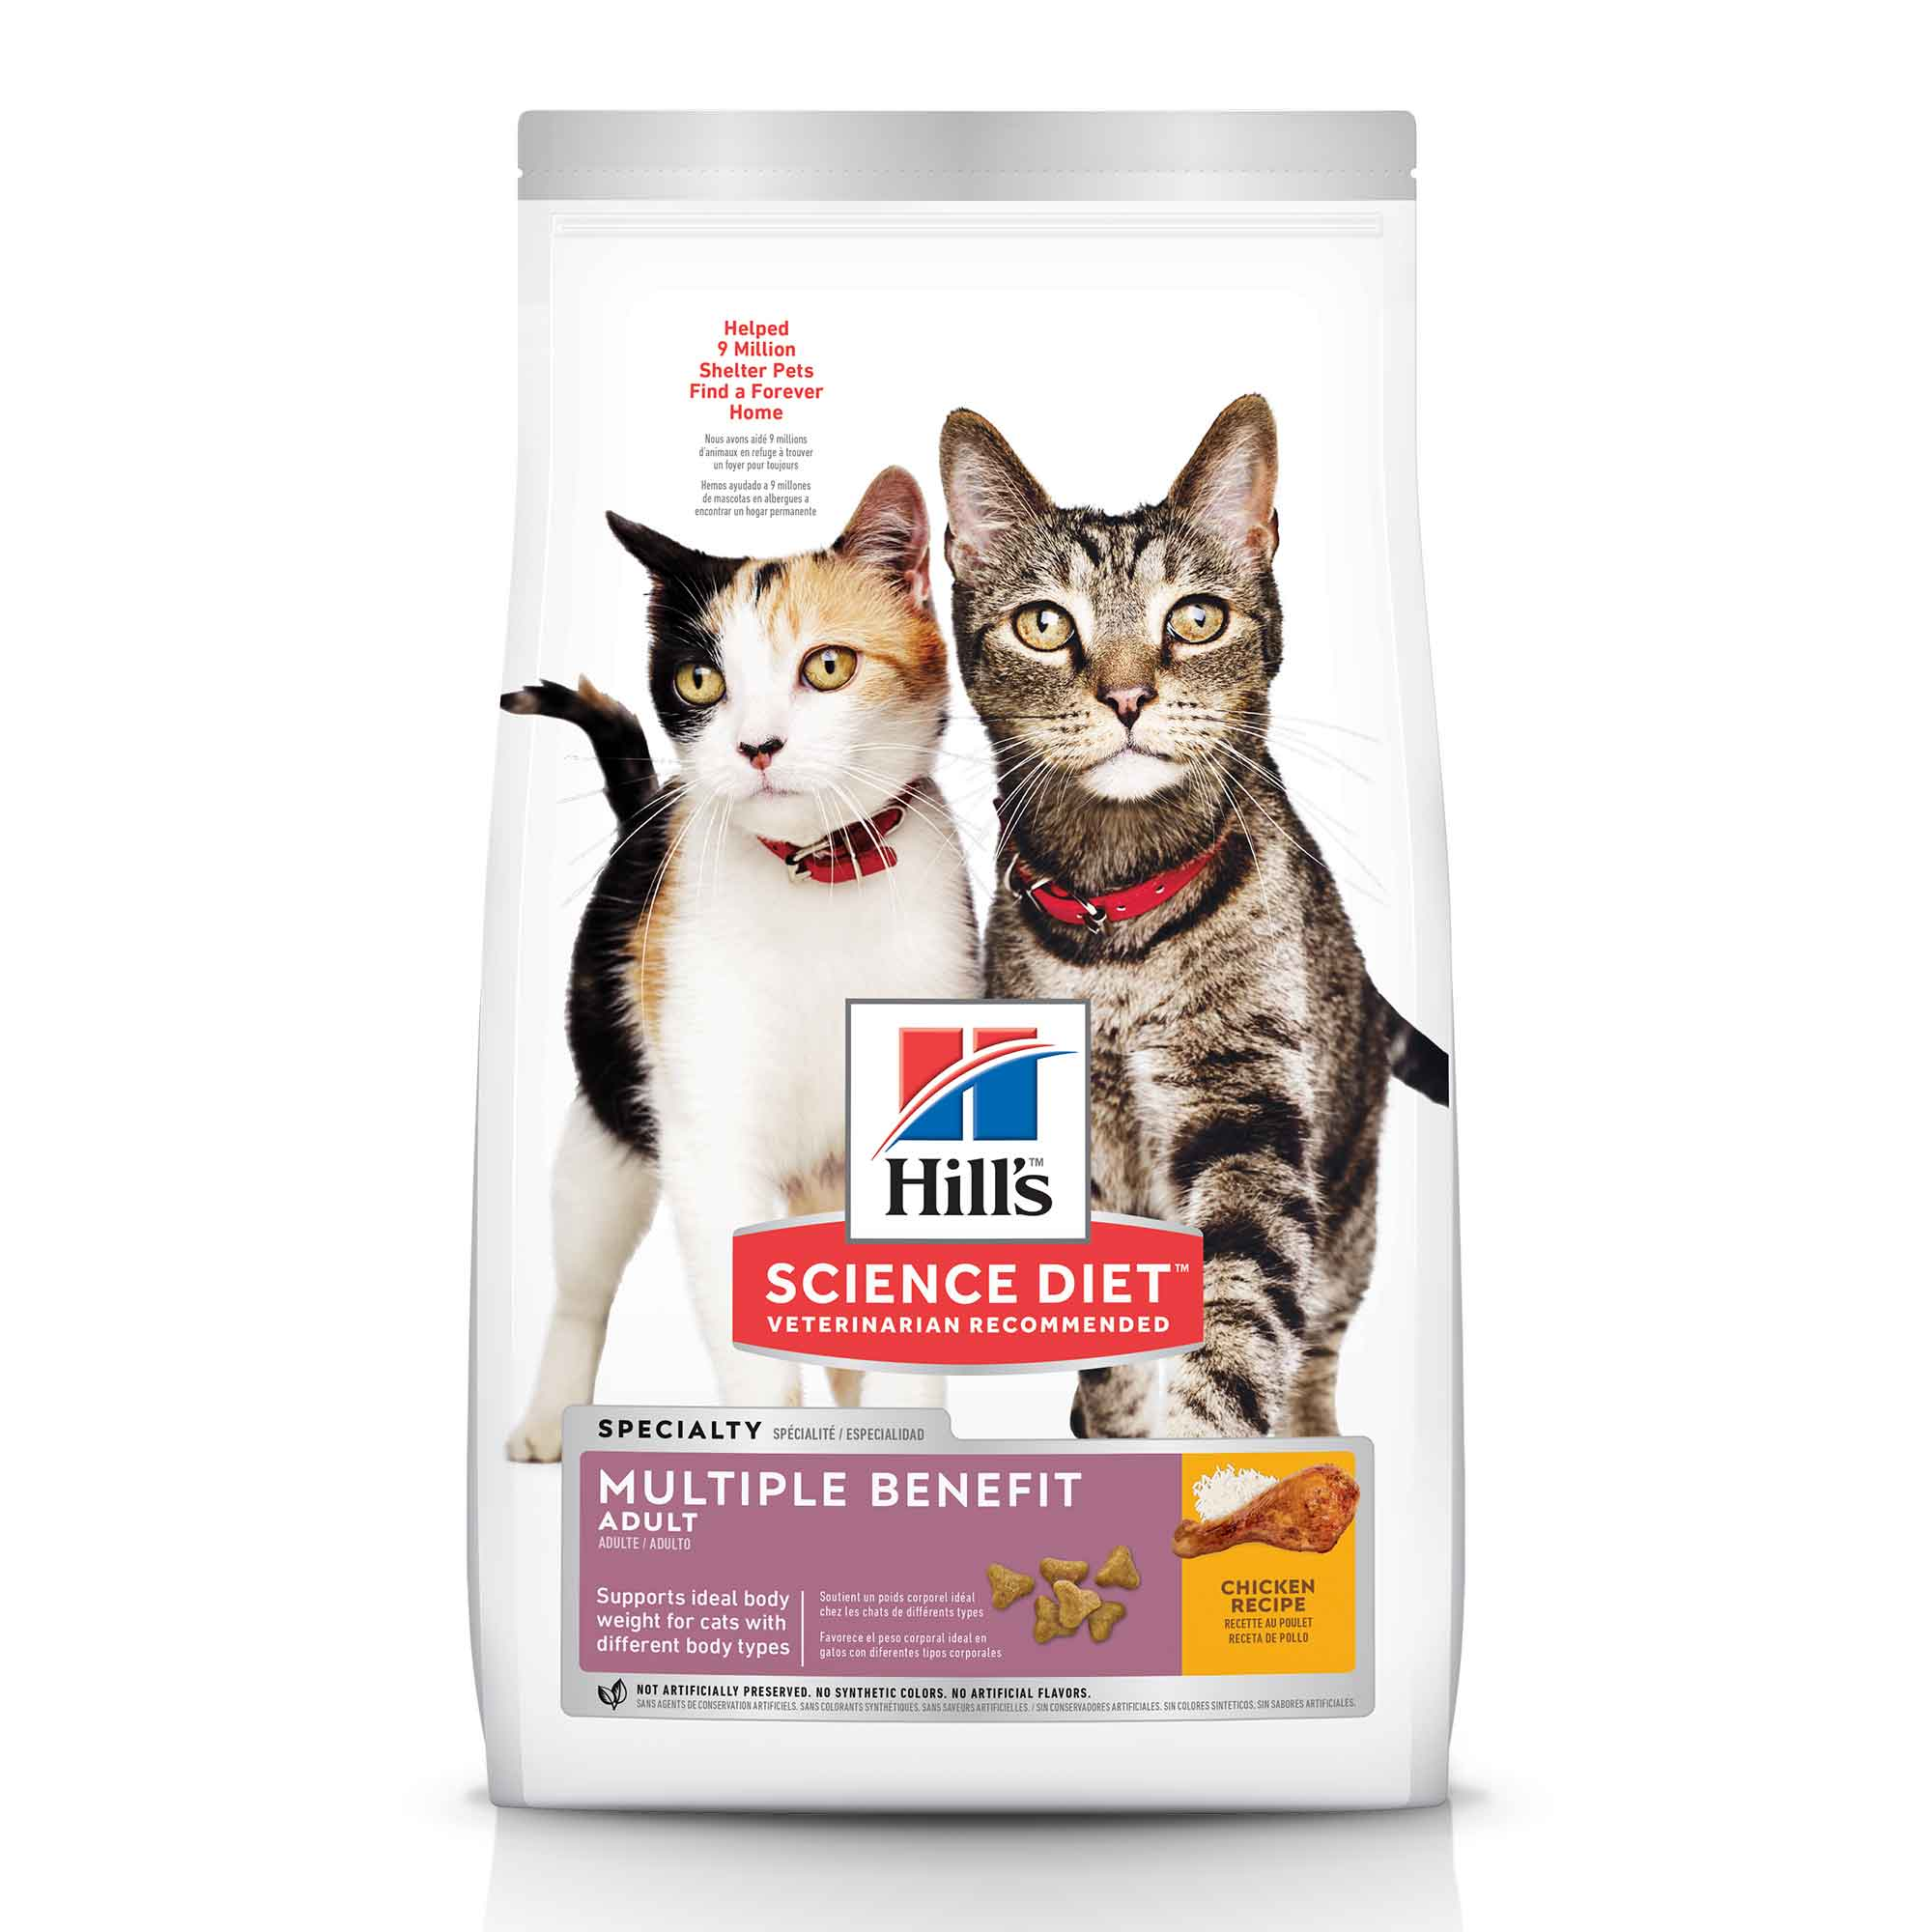 Hill's Science Diet Adult Multiple Benefit Cat Food, 15.5 pound